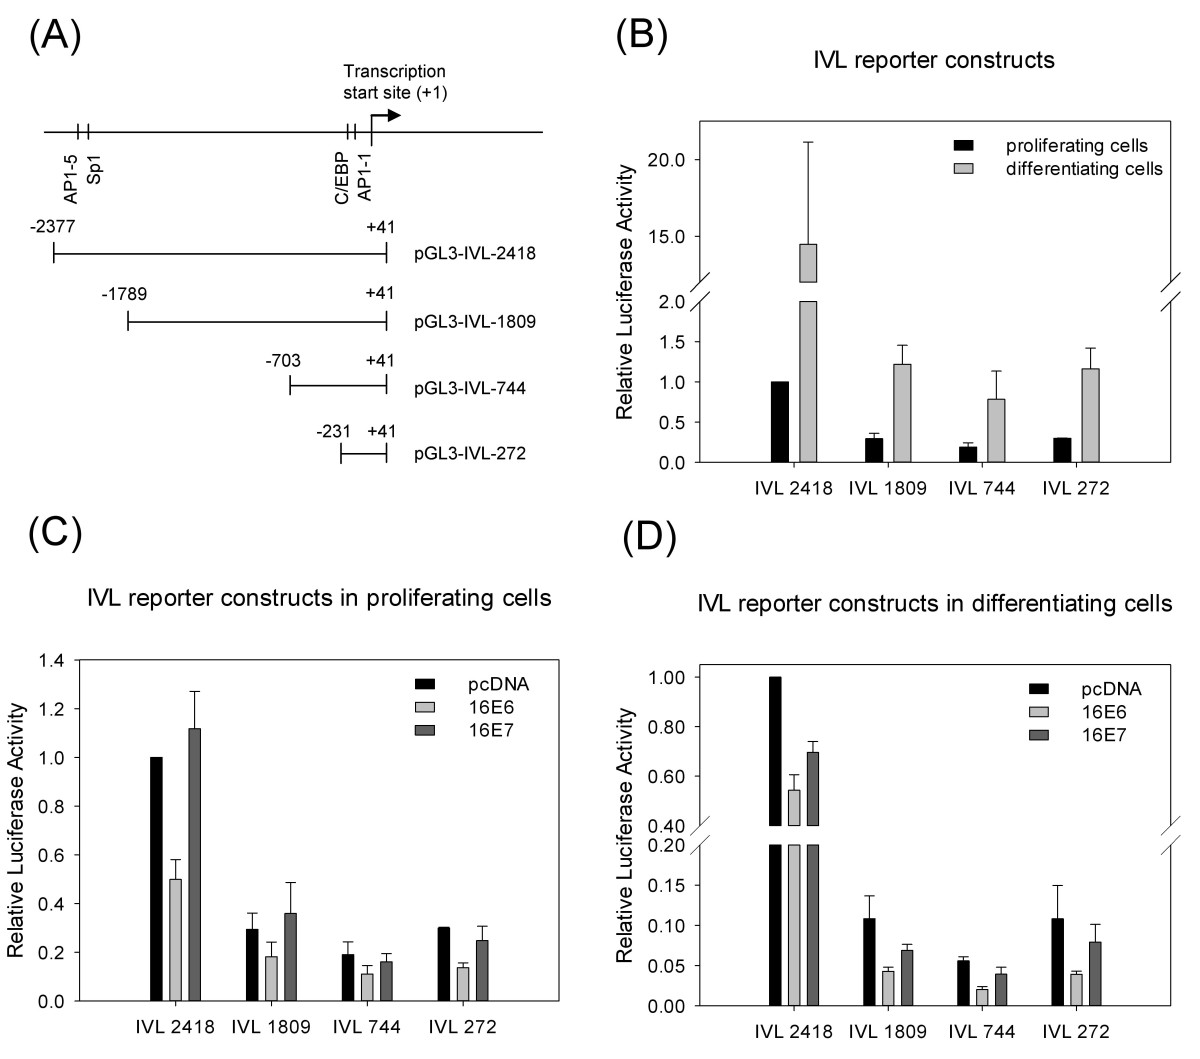 https://static-content.springer.com/image/art%3A10.1186%2F1743-422X-9-36/MediaObjects/12985_2011_Article_1701_Fig5_HTML.jpg